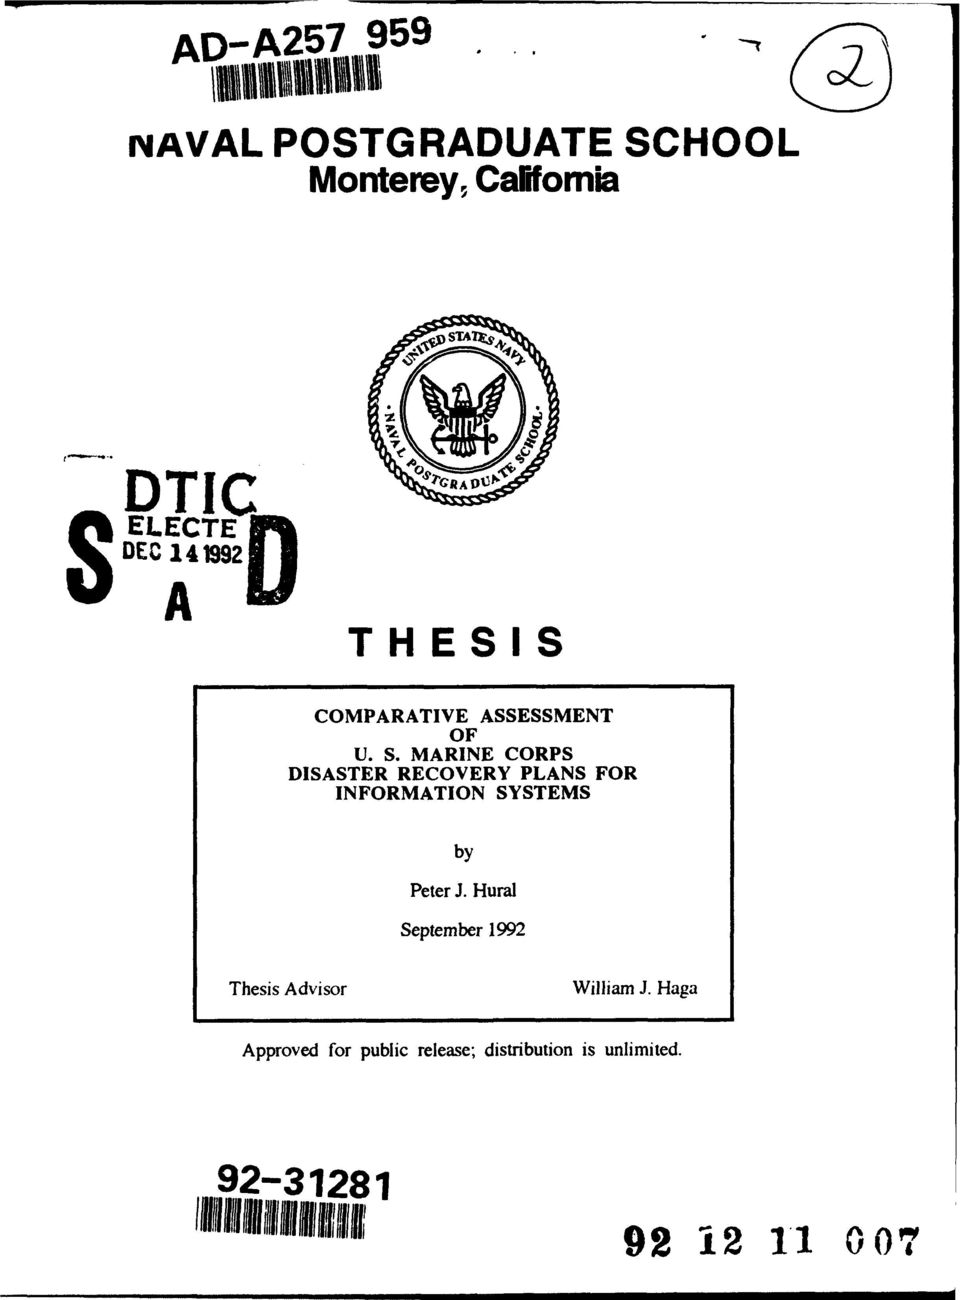 Hural September 1992 Thesis Advisor William J.